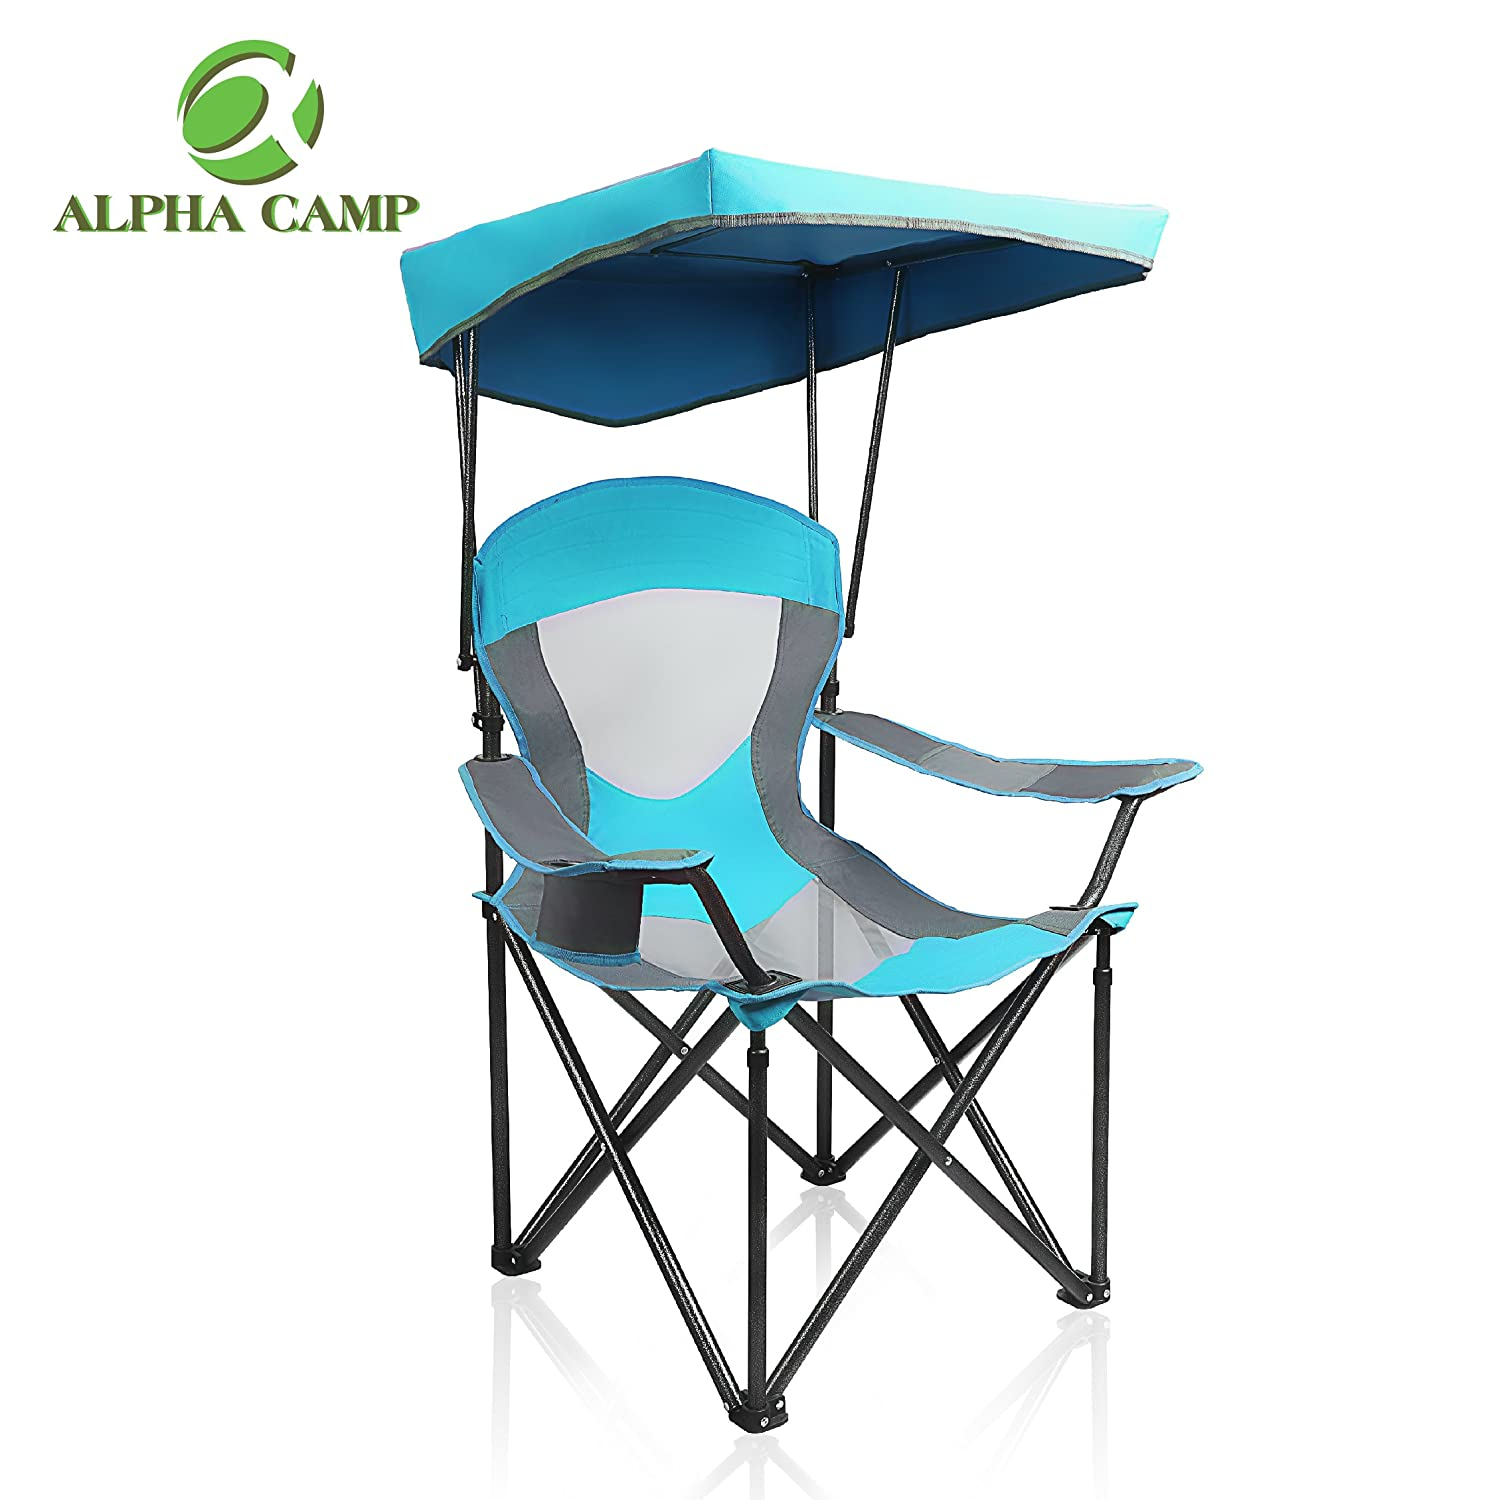 ALPHA CAMP Mesh Canopy Chair Camping Chair Folding Recliner Support 350 LBS